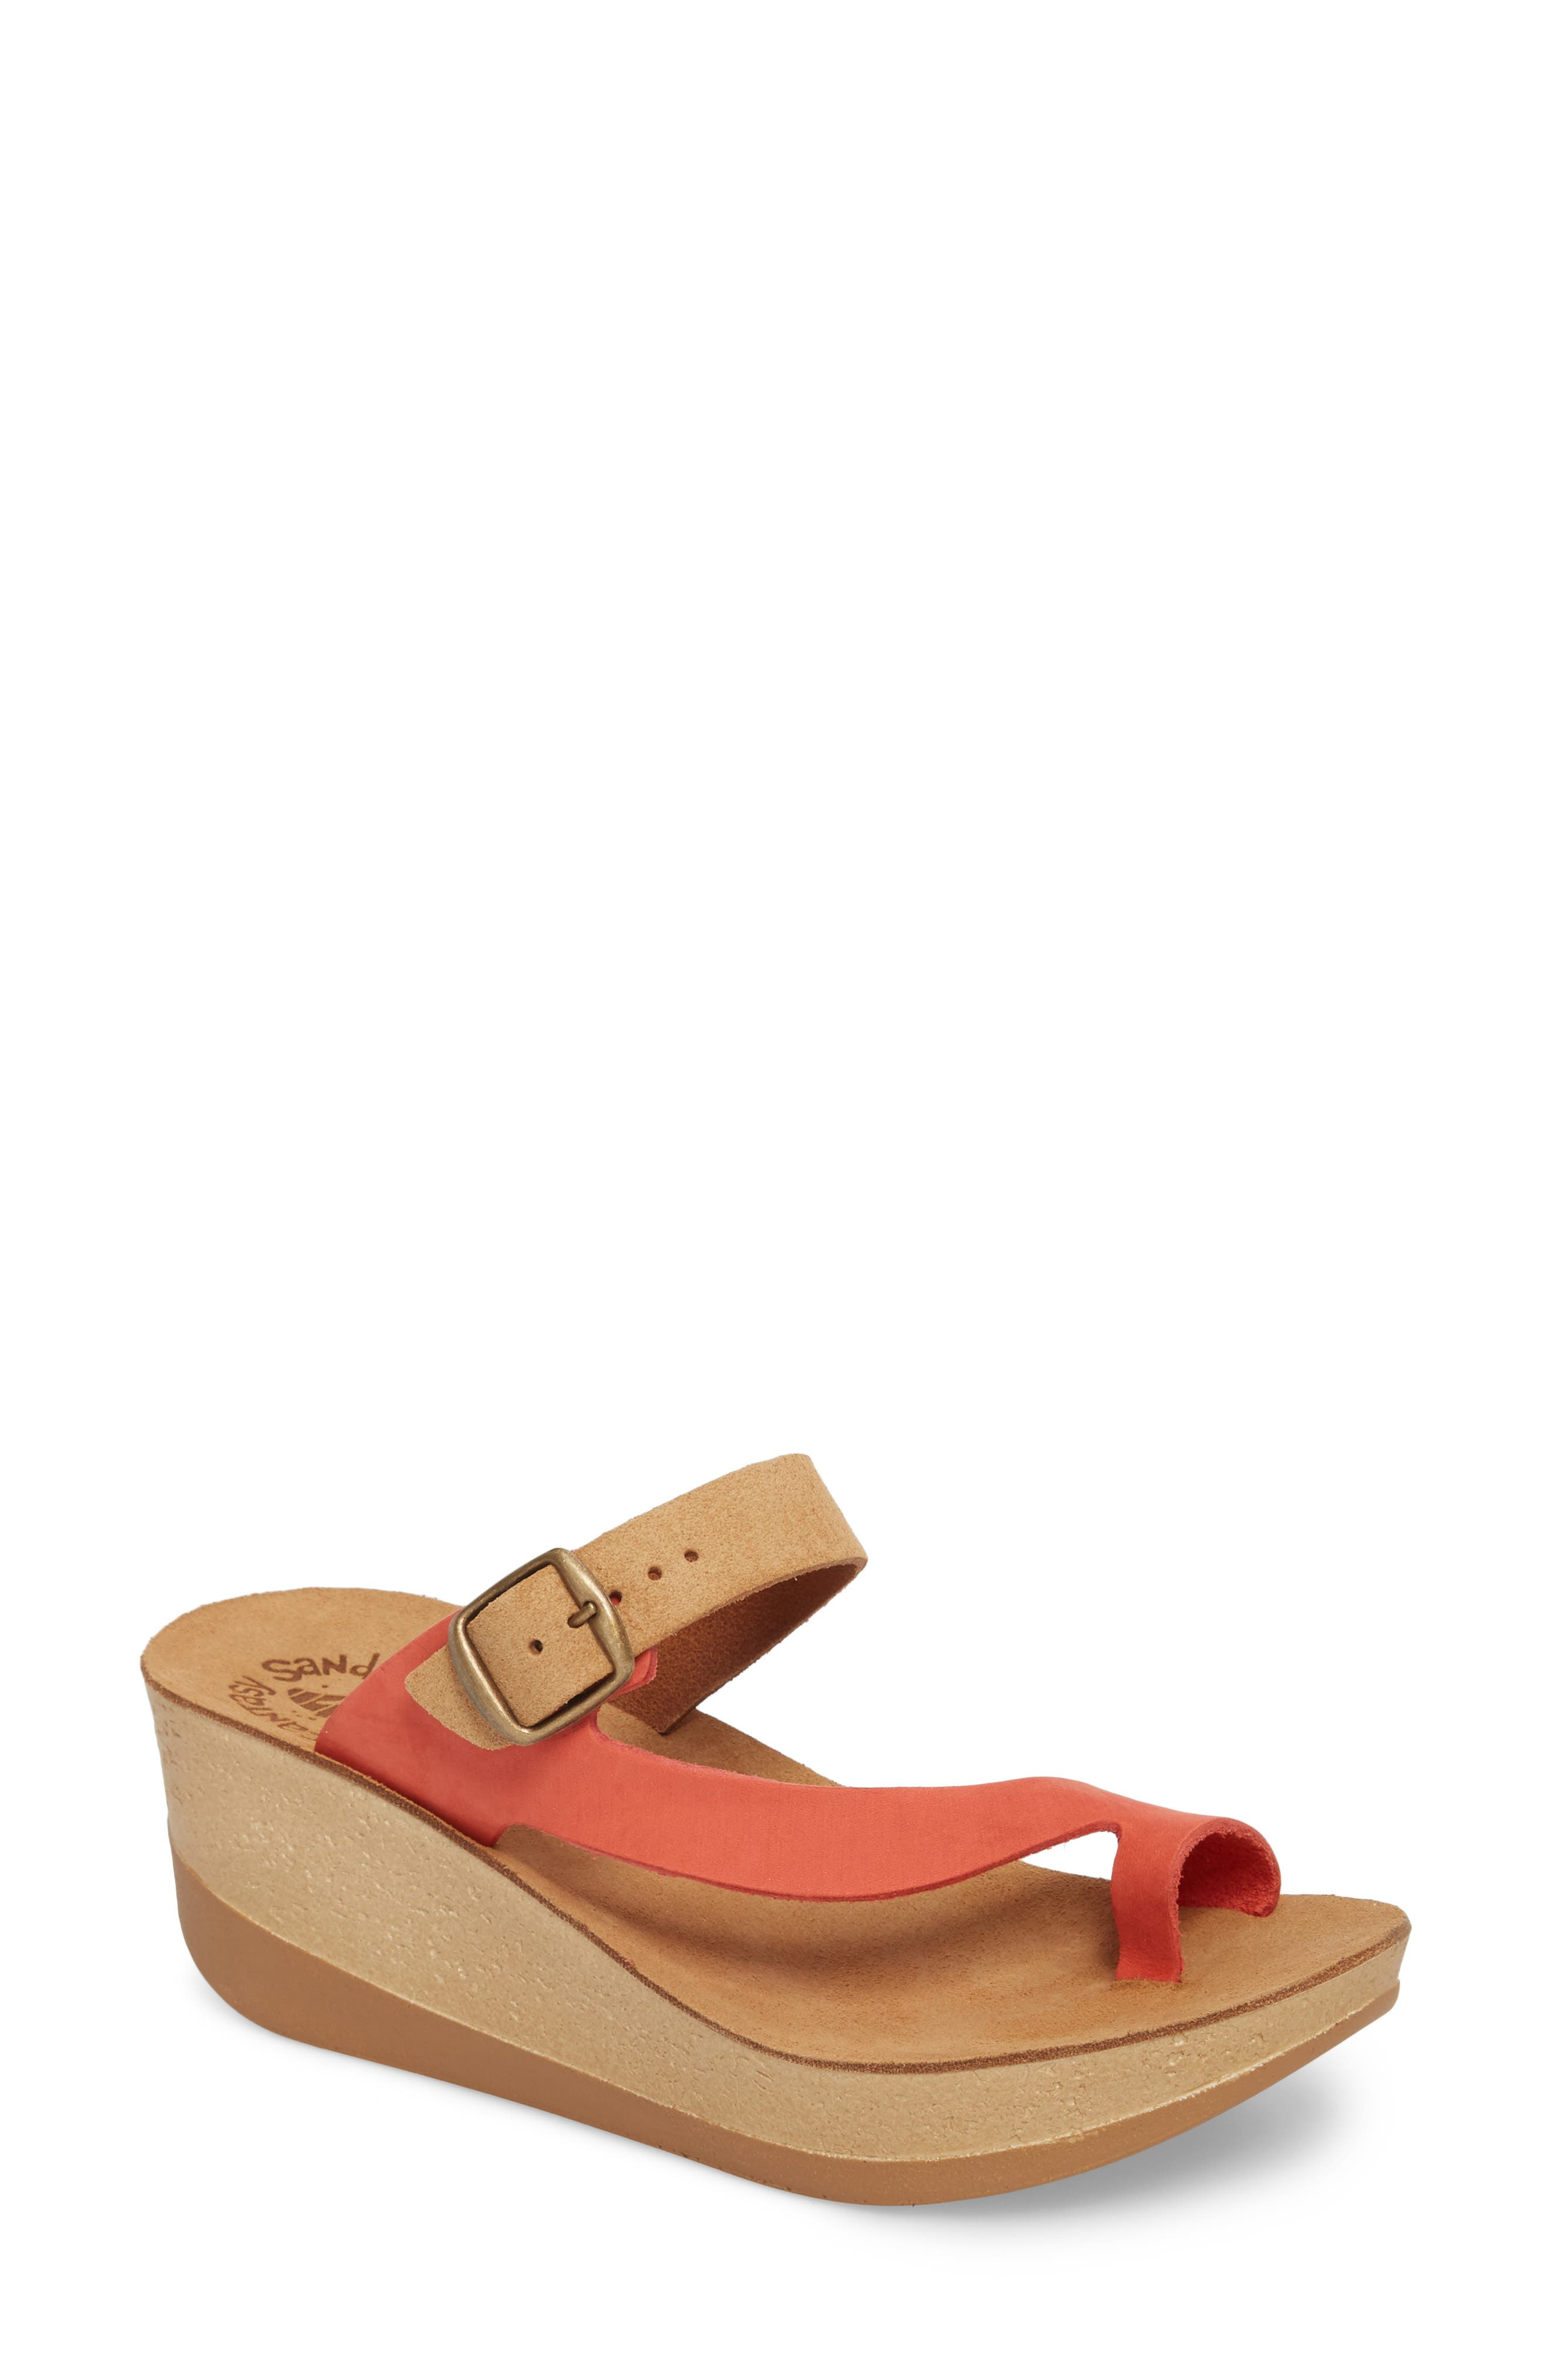 Felisa Wedge Sandal,                             Main thumbnail 1, color,                             Cuoio Red Leather